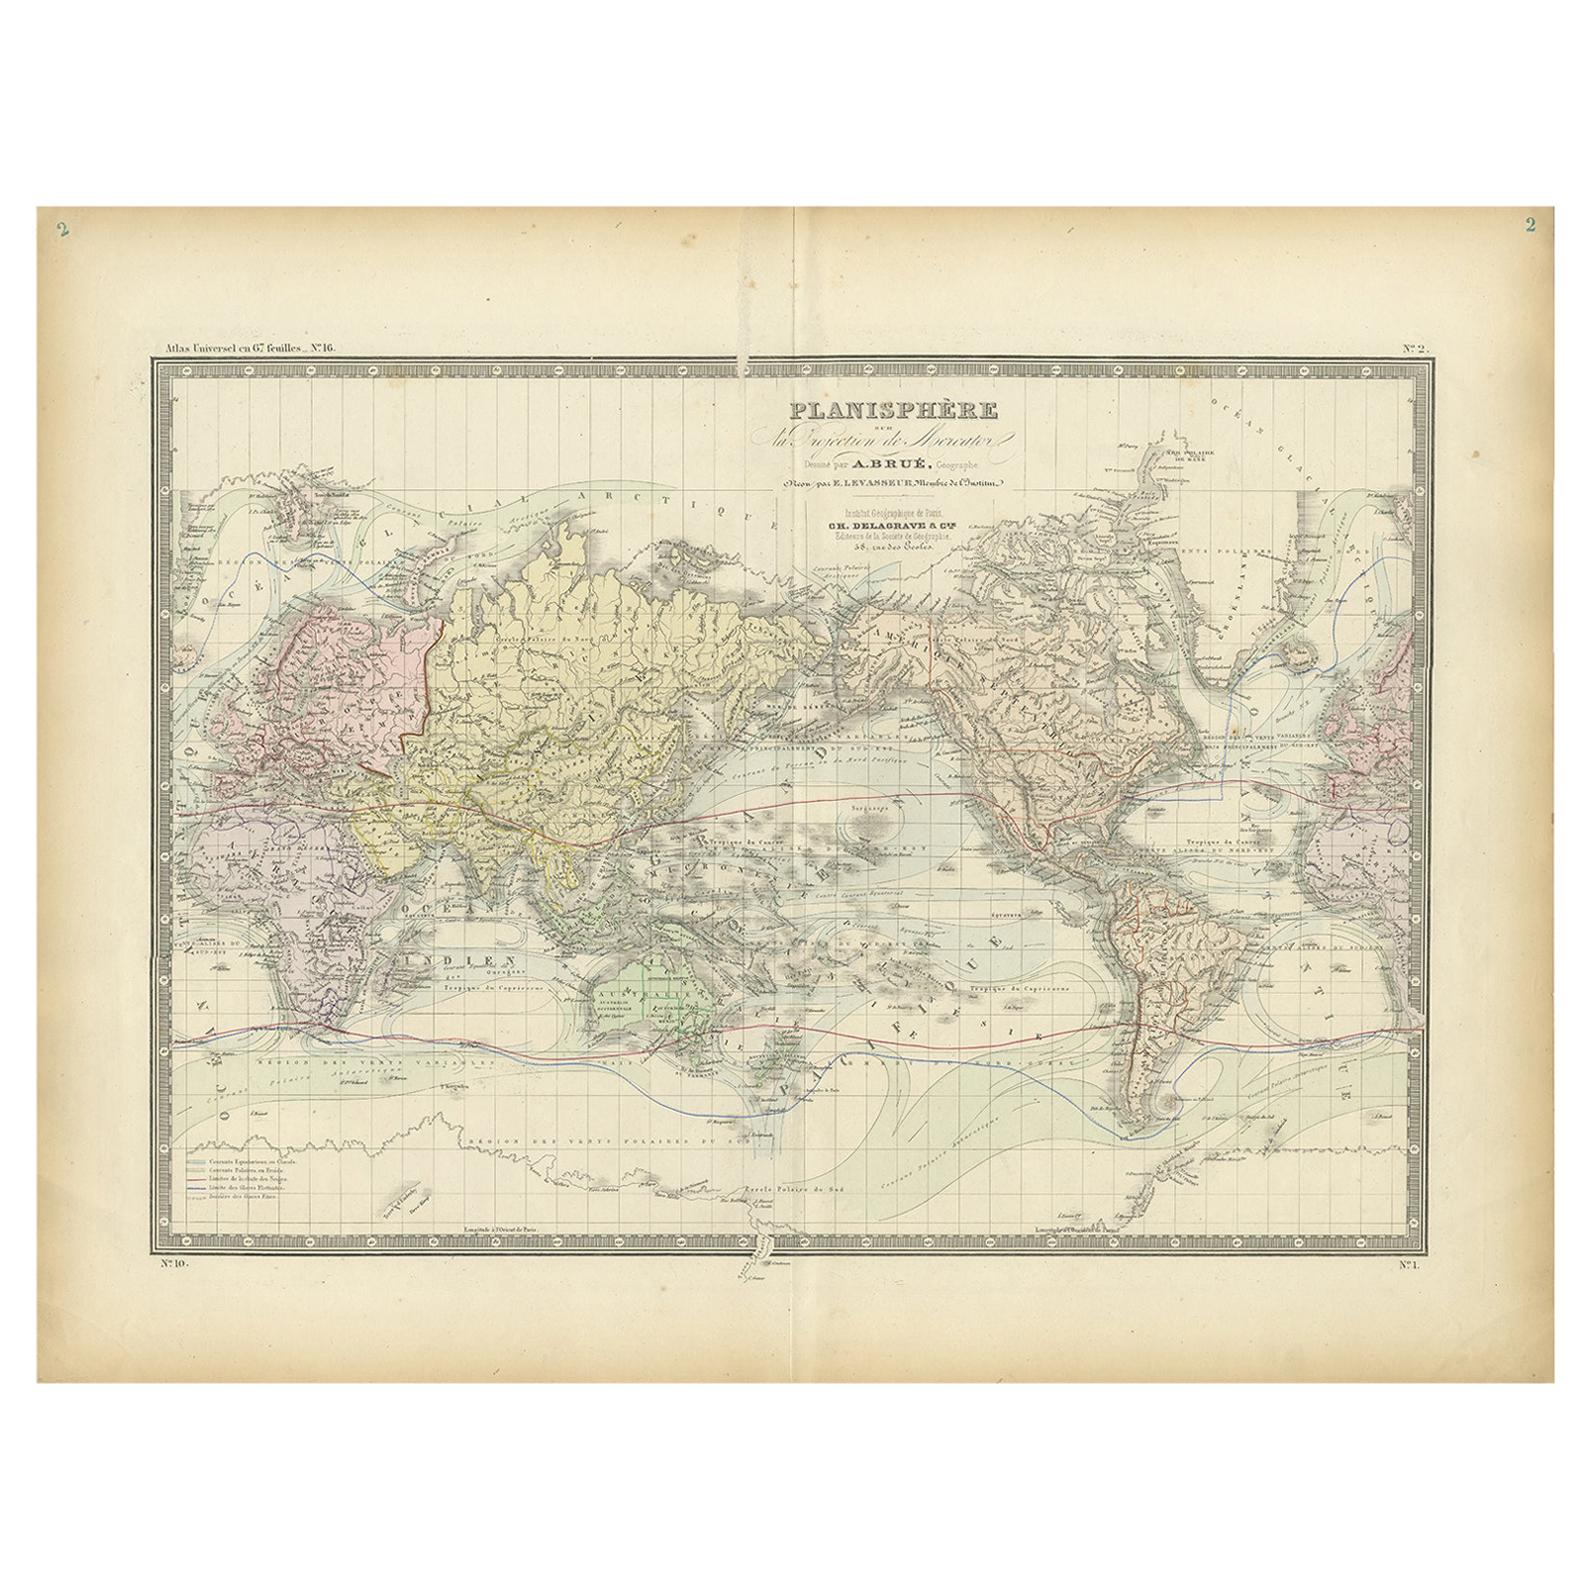 Antique World Map by Levasseur, '1875'